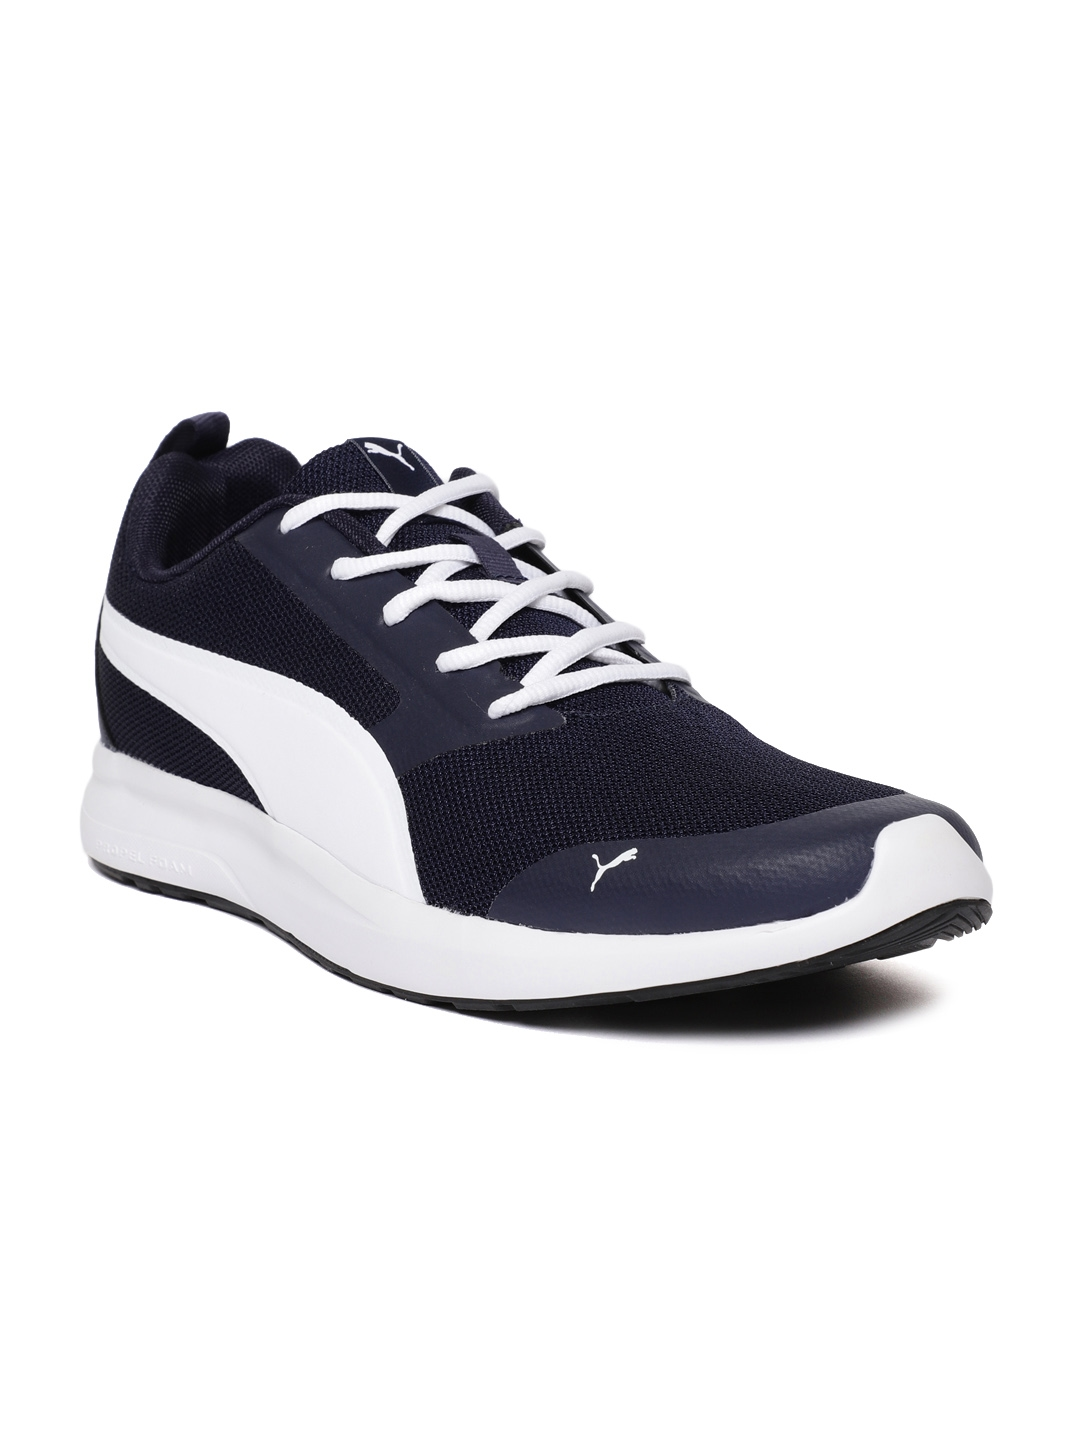 985dd216e9d730 Buy Puma Unisex Navy Blue Breakout IDP Sneakers - Casual Shoes for ...